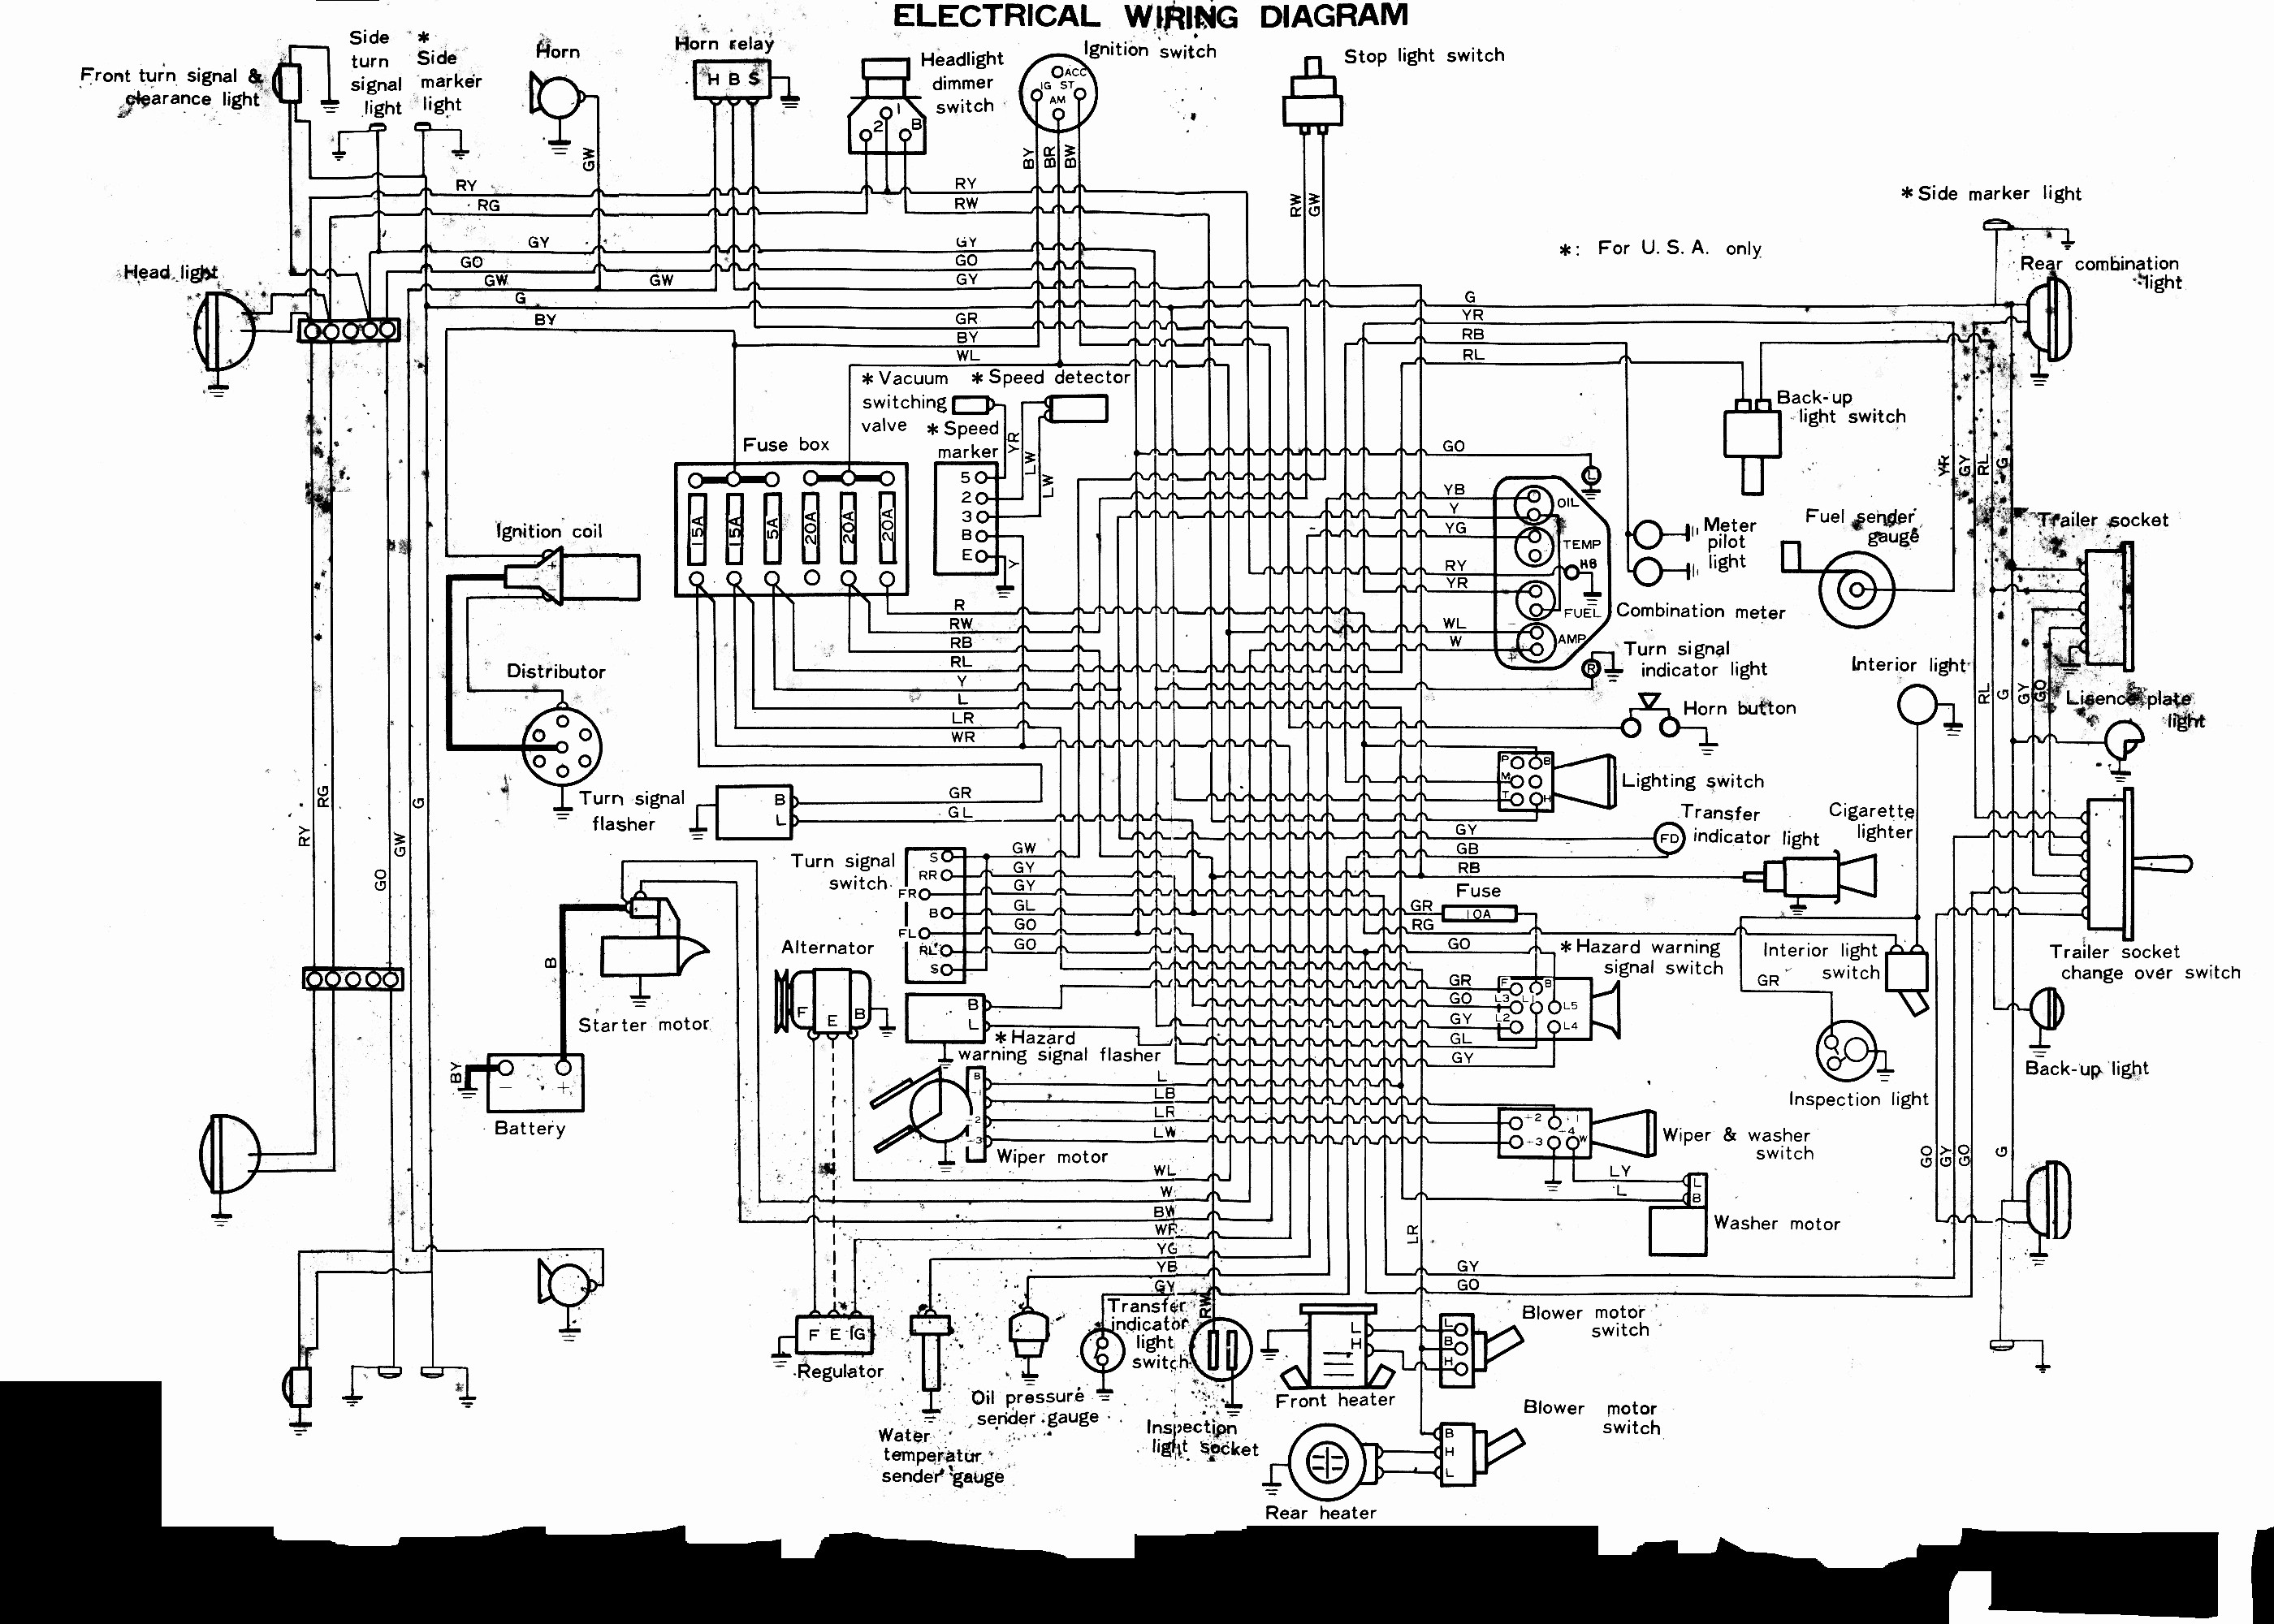 Wiring Diagram For 2003 Chrysler Voyager - Wiring Diagrams on 03 dodge ram wiring diagram, 03 ford expedition wiring diagram, 03 ford ranger wiring diagram, 03 mitsubishi galant wiring diagram, 03 jeep wrangler wiring diagram,